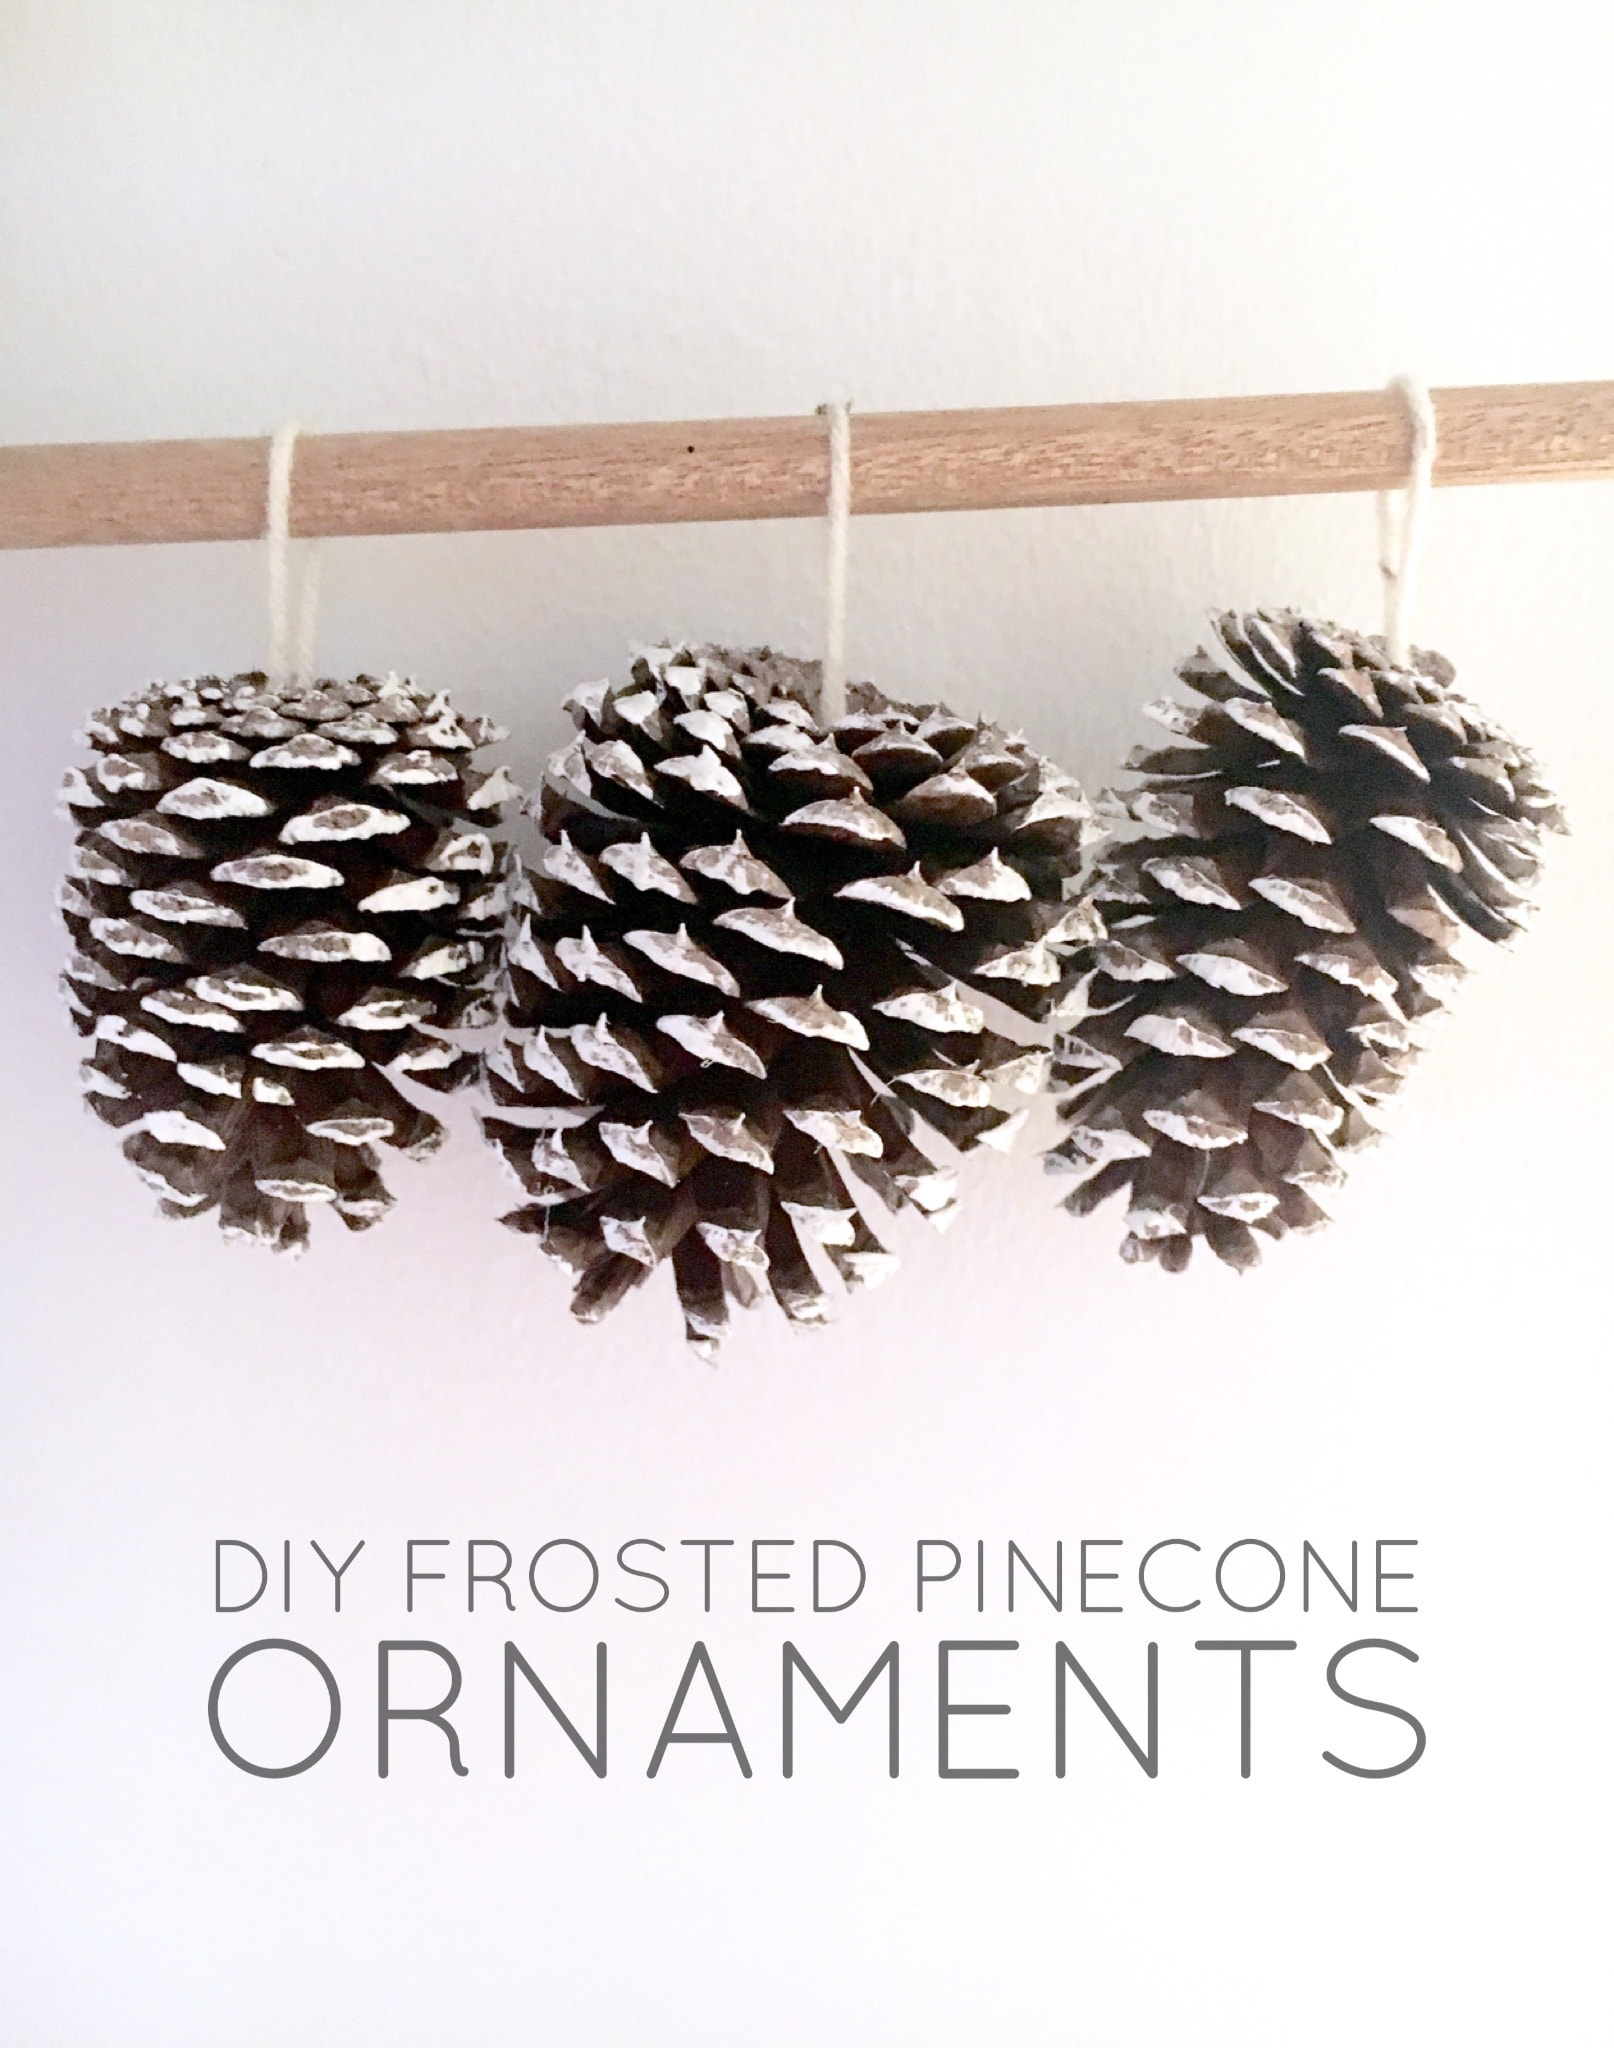 DIY Frosted Pinecone Ornaments